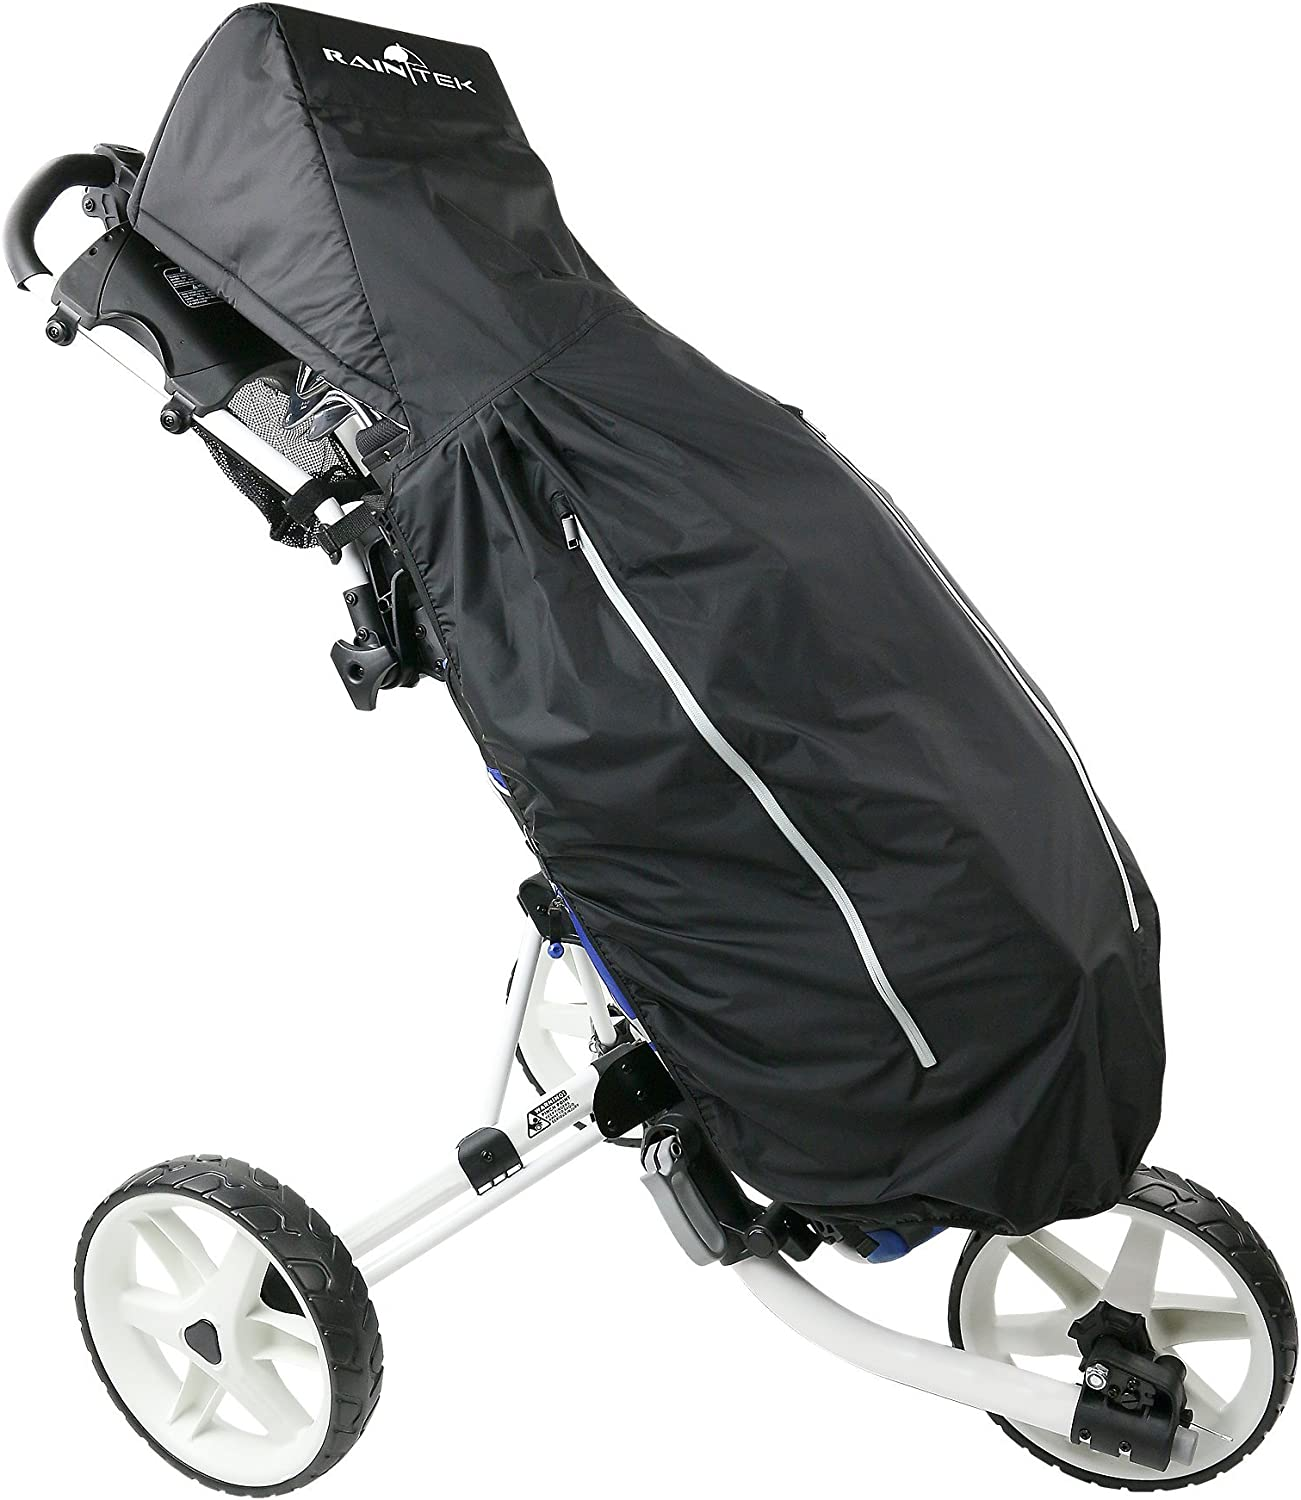 Rain Tek Waterproof Golf Bag Rain Protection Cover with Hood for Golf Push Carts